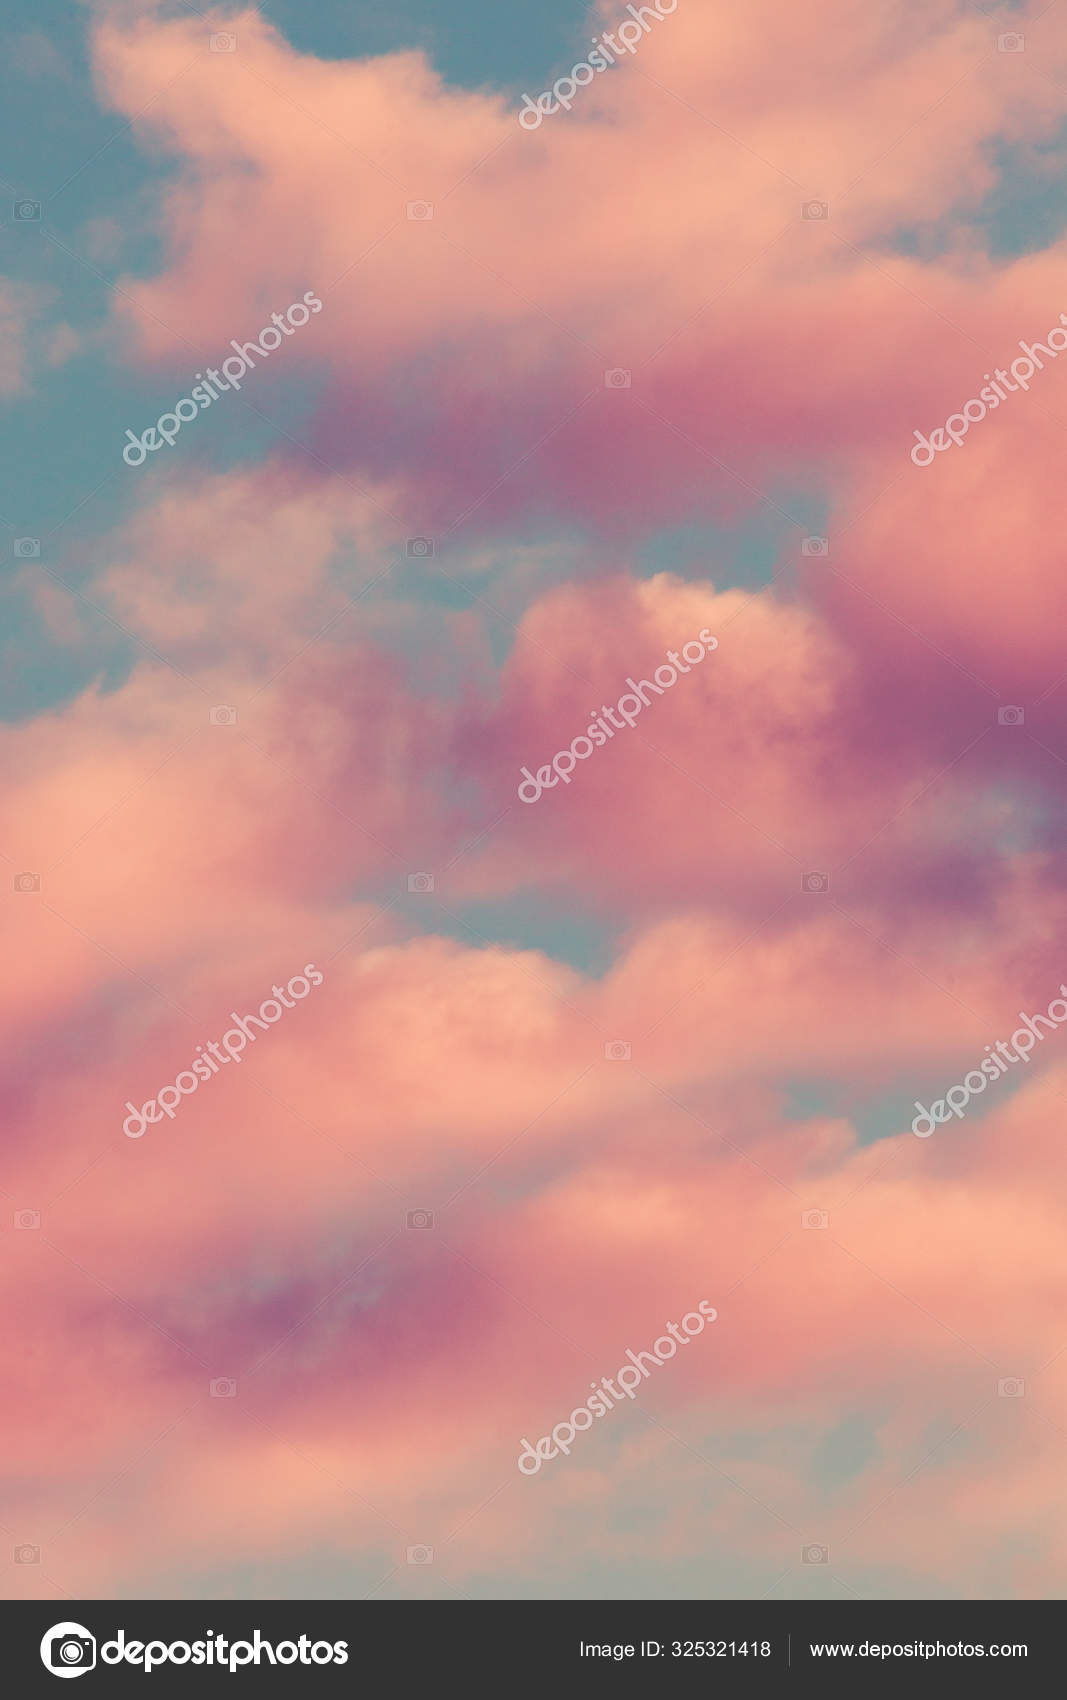 heaven with pink clouds background image stock photo c cokacoka 325321418 depositphotos